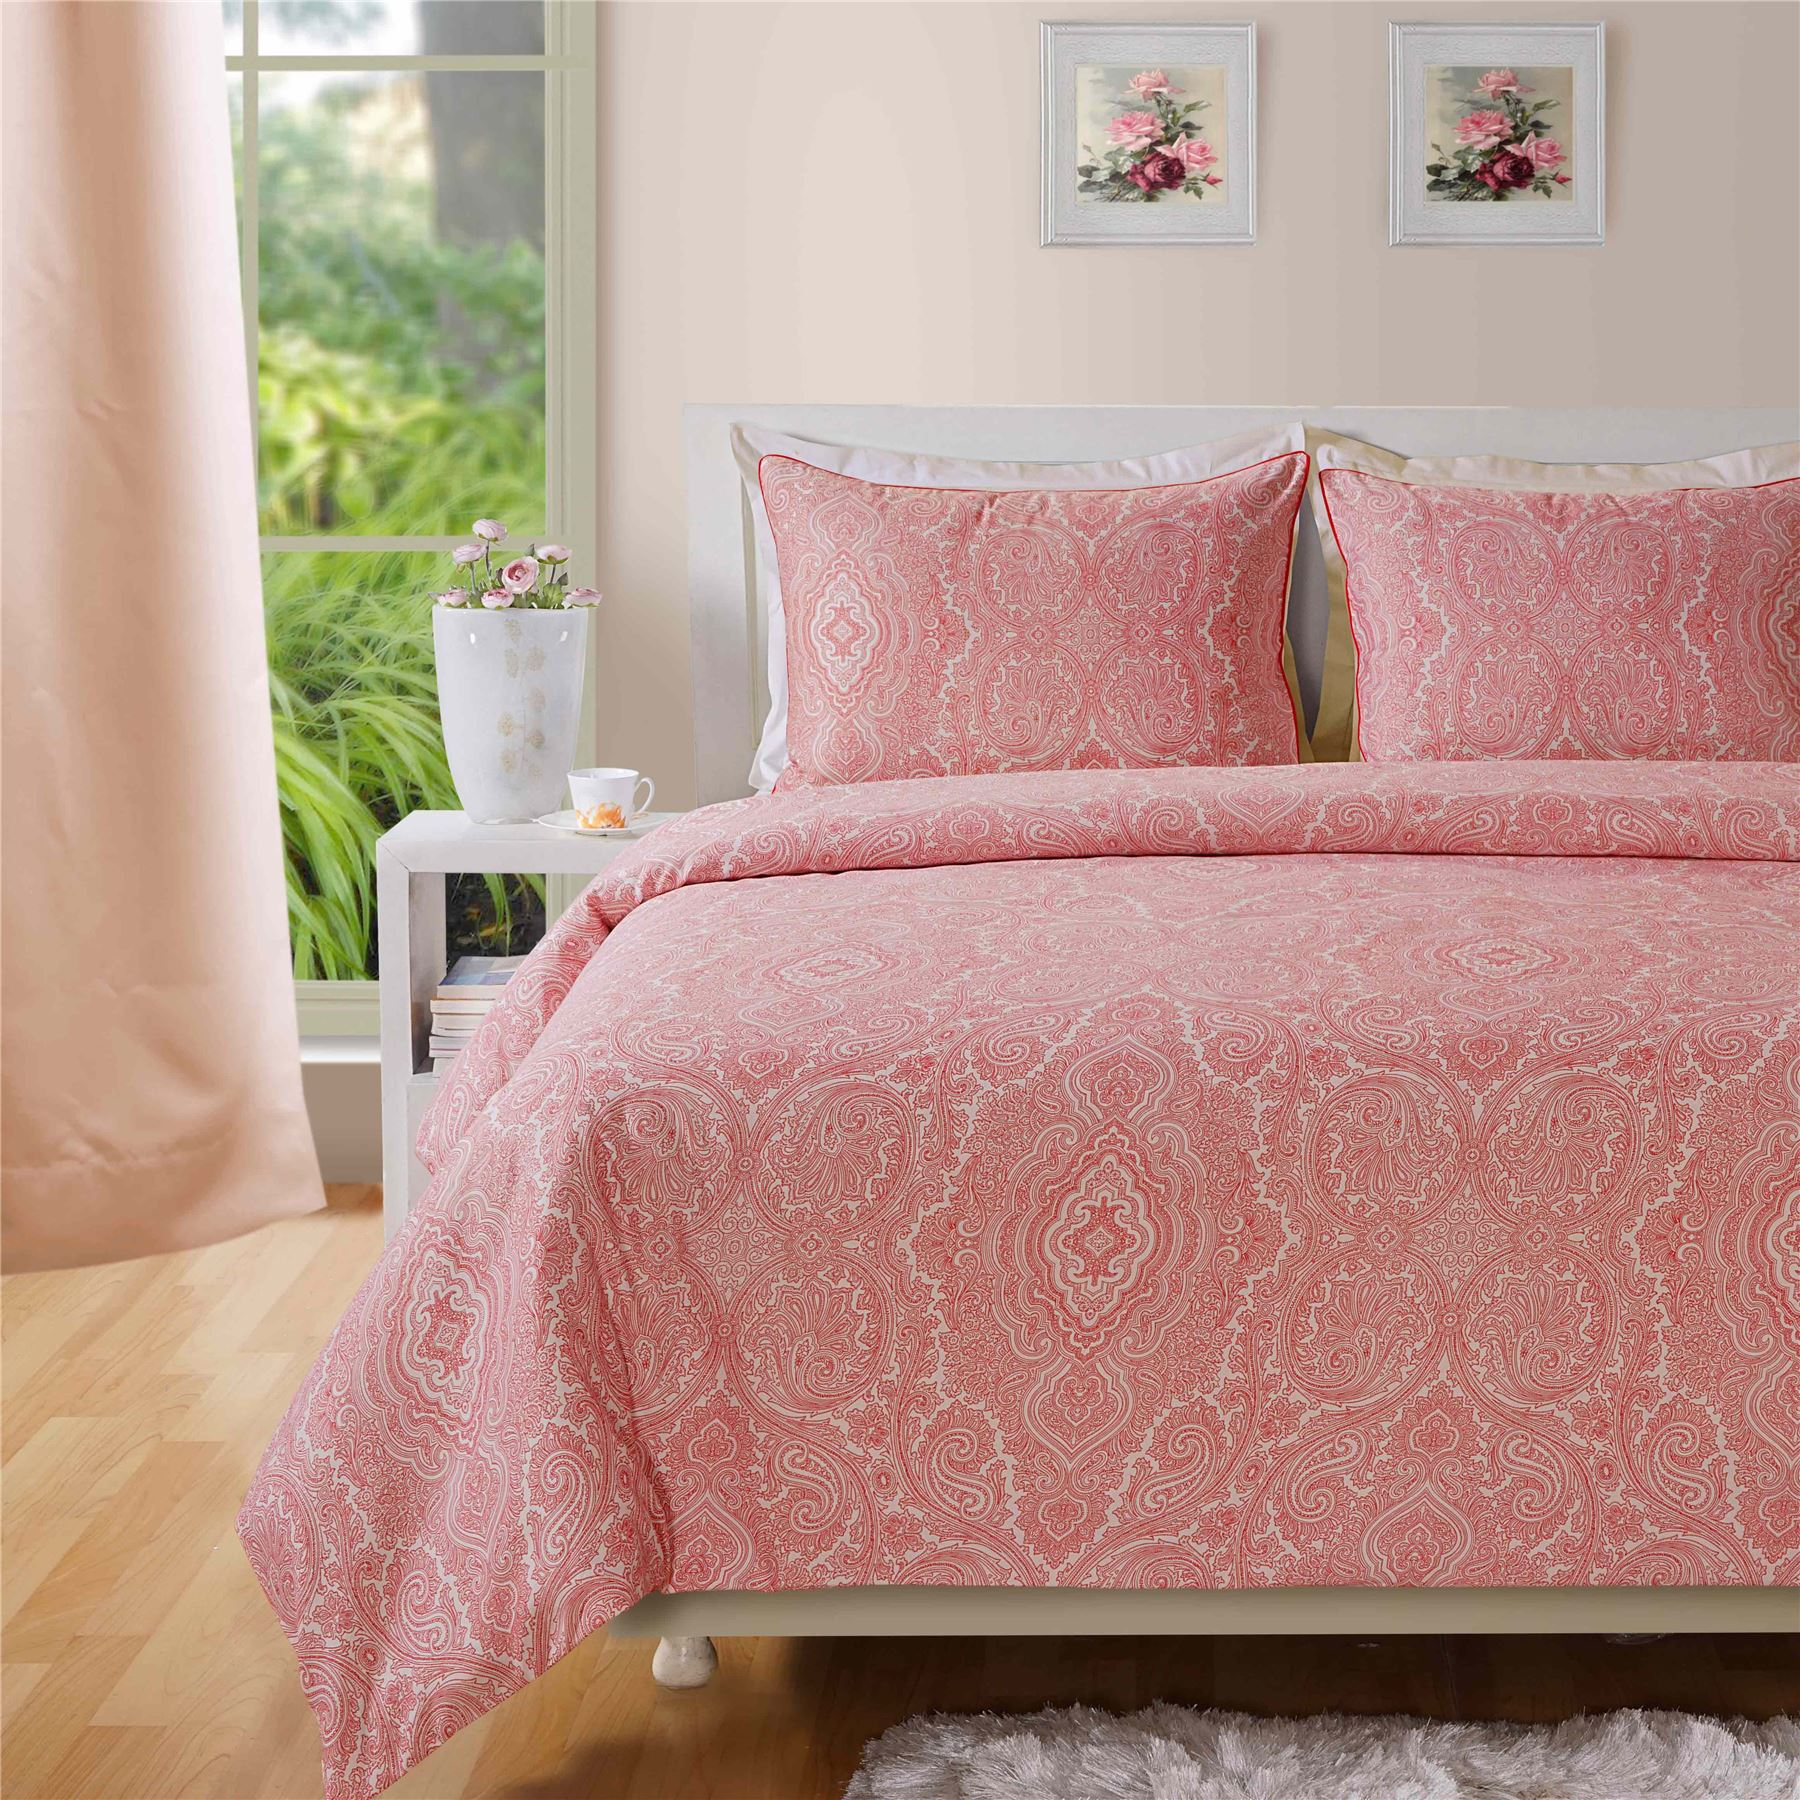 400tc luxury cotton rich paisley printed duvet cover for Luxury cotton comforter sets